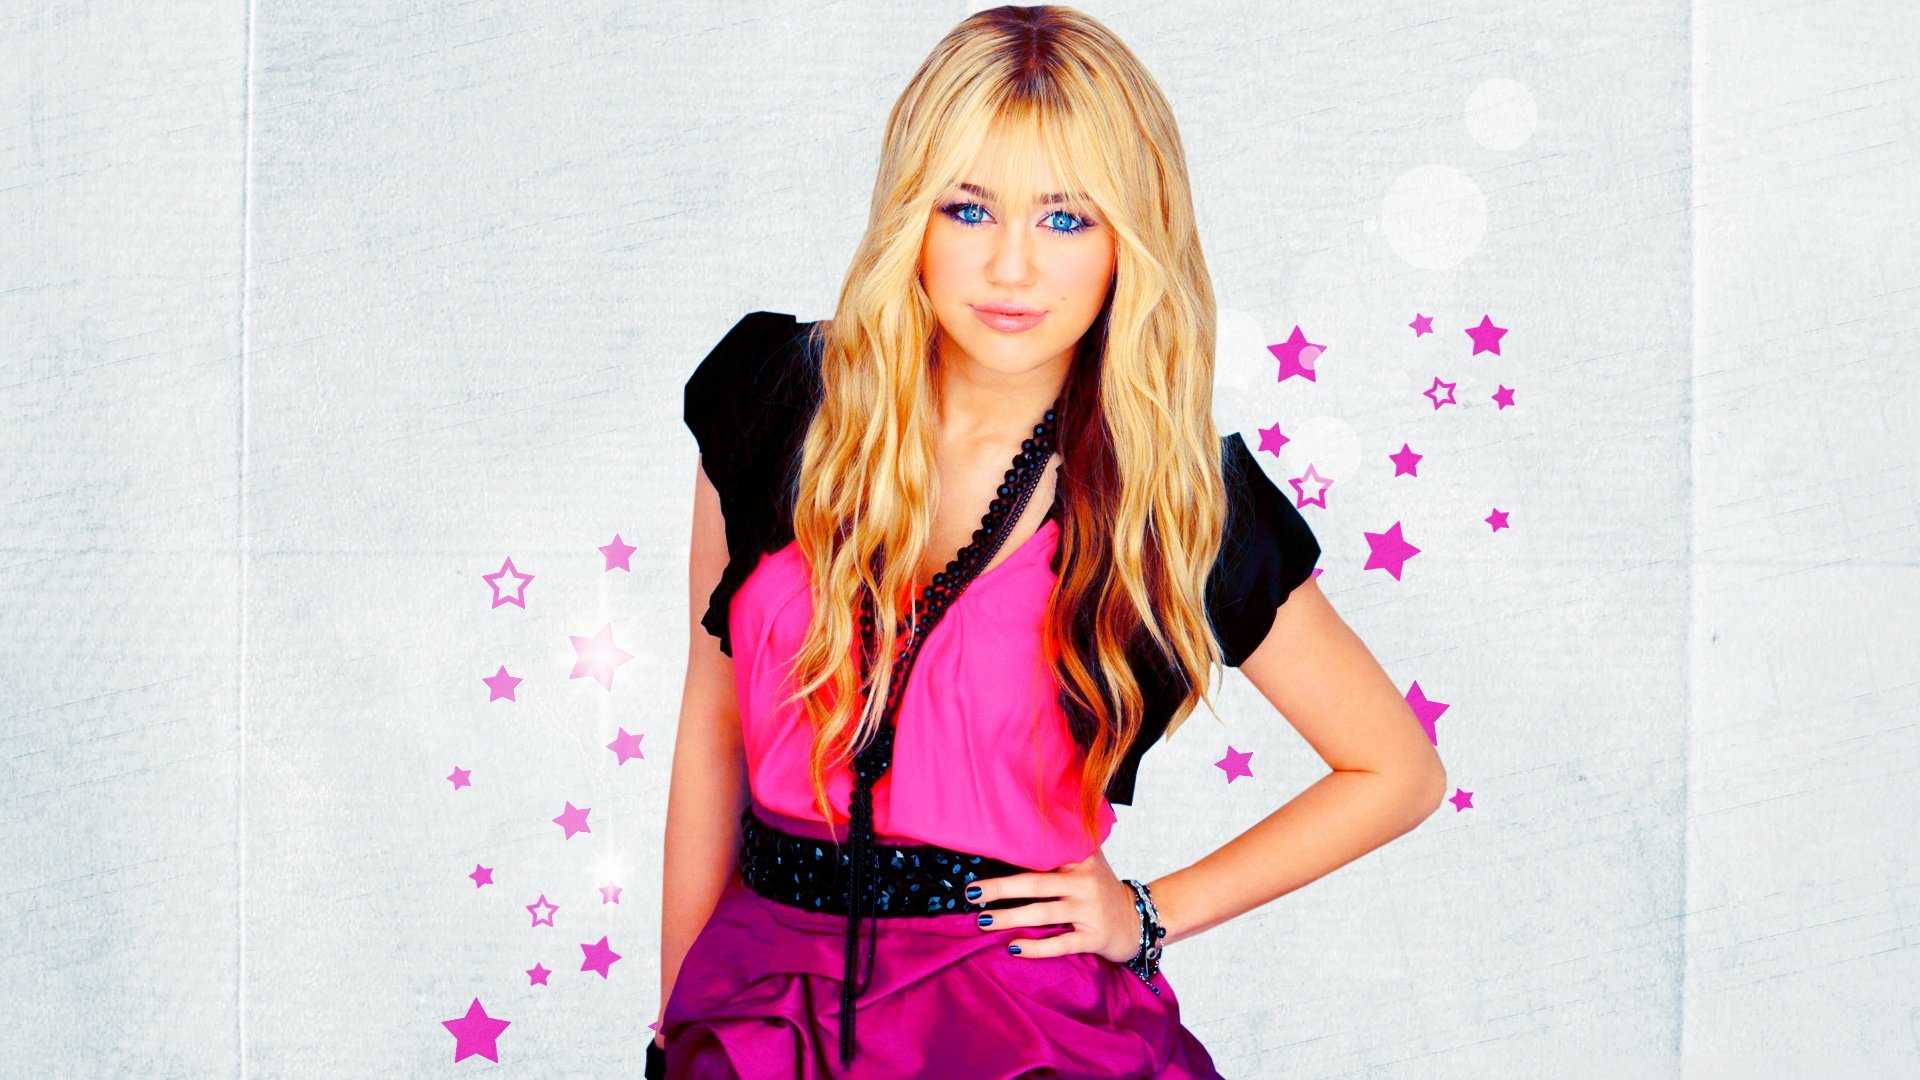 high resolution miley cyrus hd 1920x1080 wallpaper id:81040 for pc